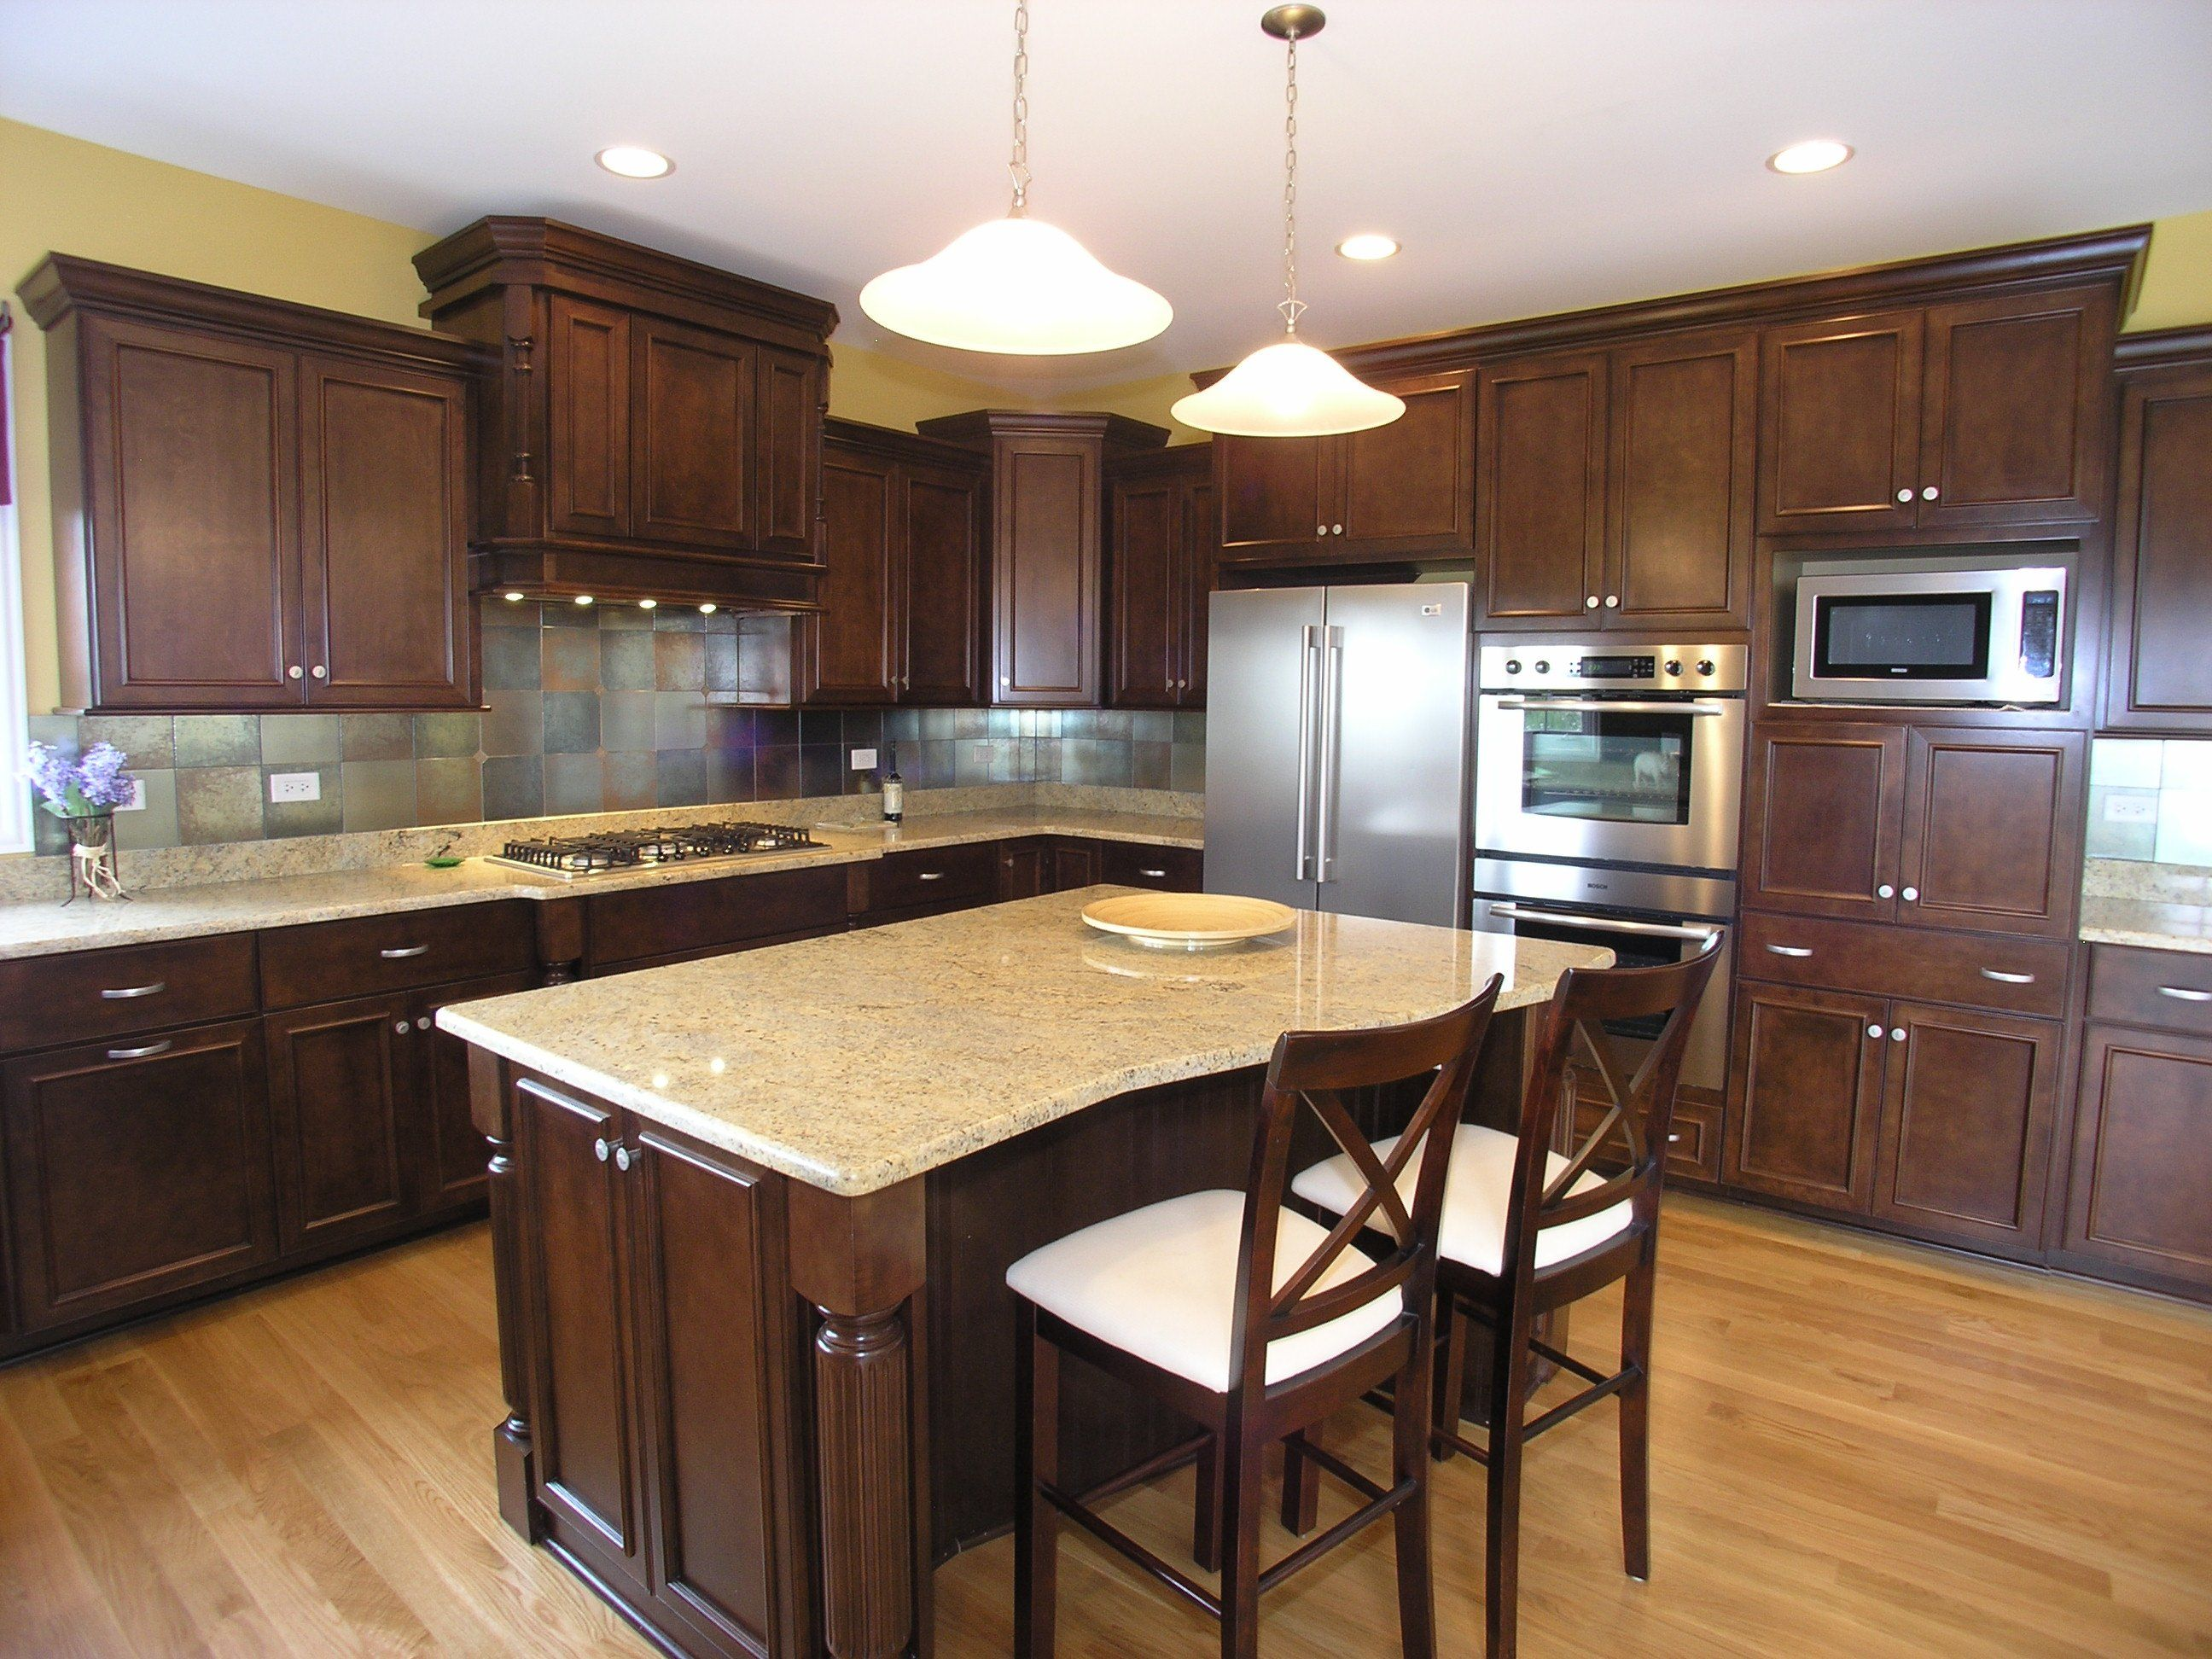 Superior Kitchen Counter Top Ideas | kitchen | Pinterest | Hogar y ...